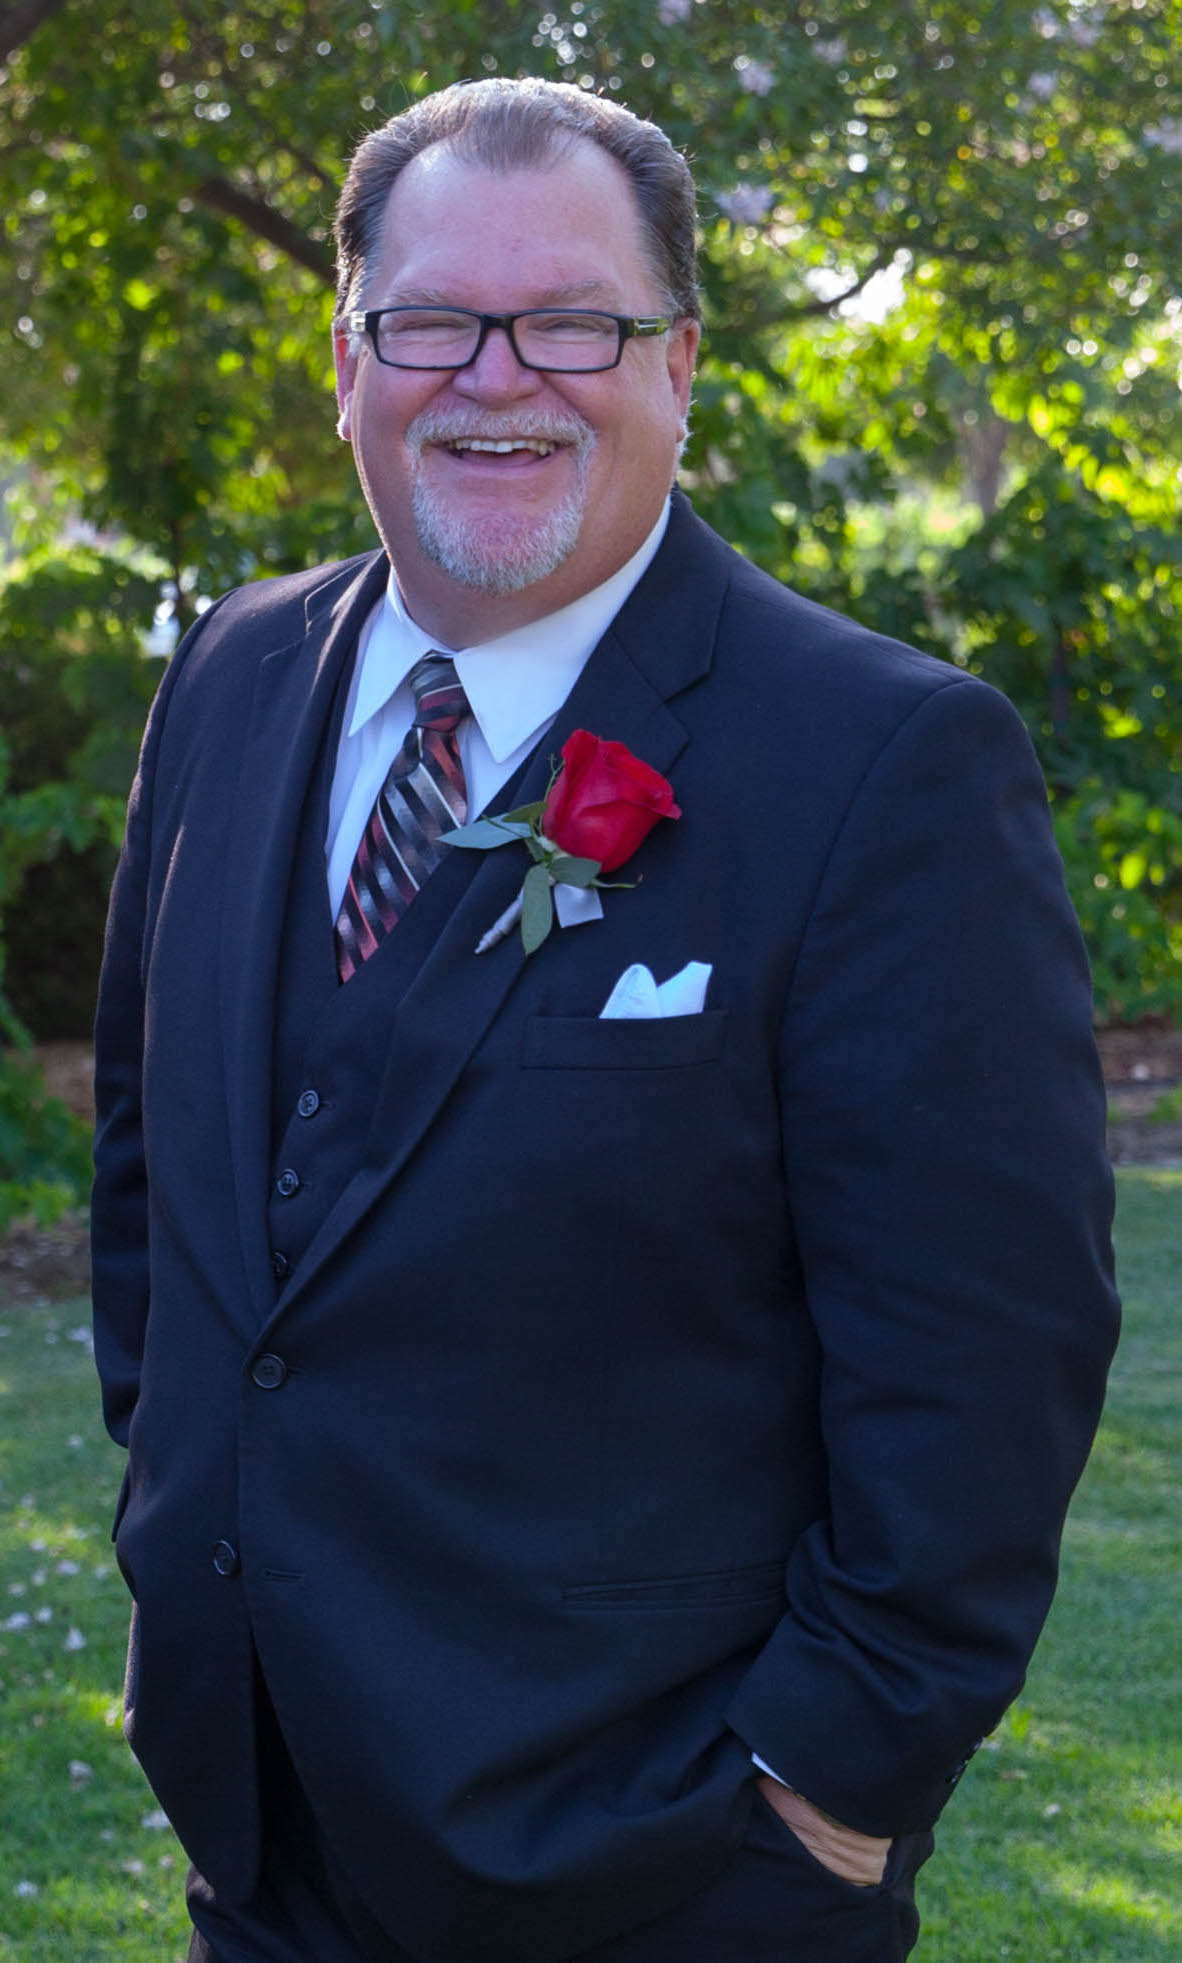 Rev. Christopher Tuttle, San Diego Wedding Officiant | San Diego Wedding Chaplain